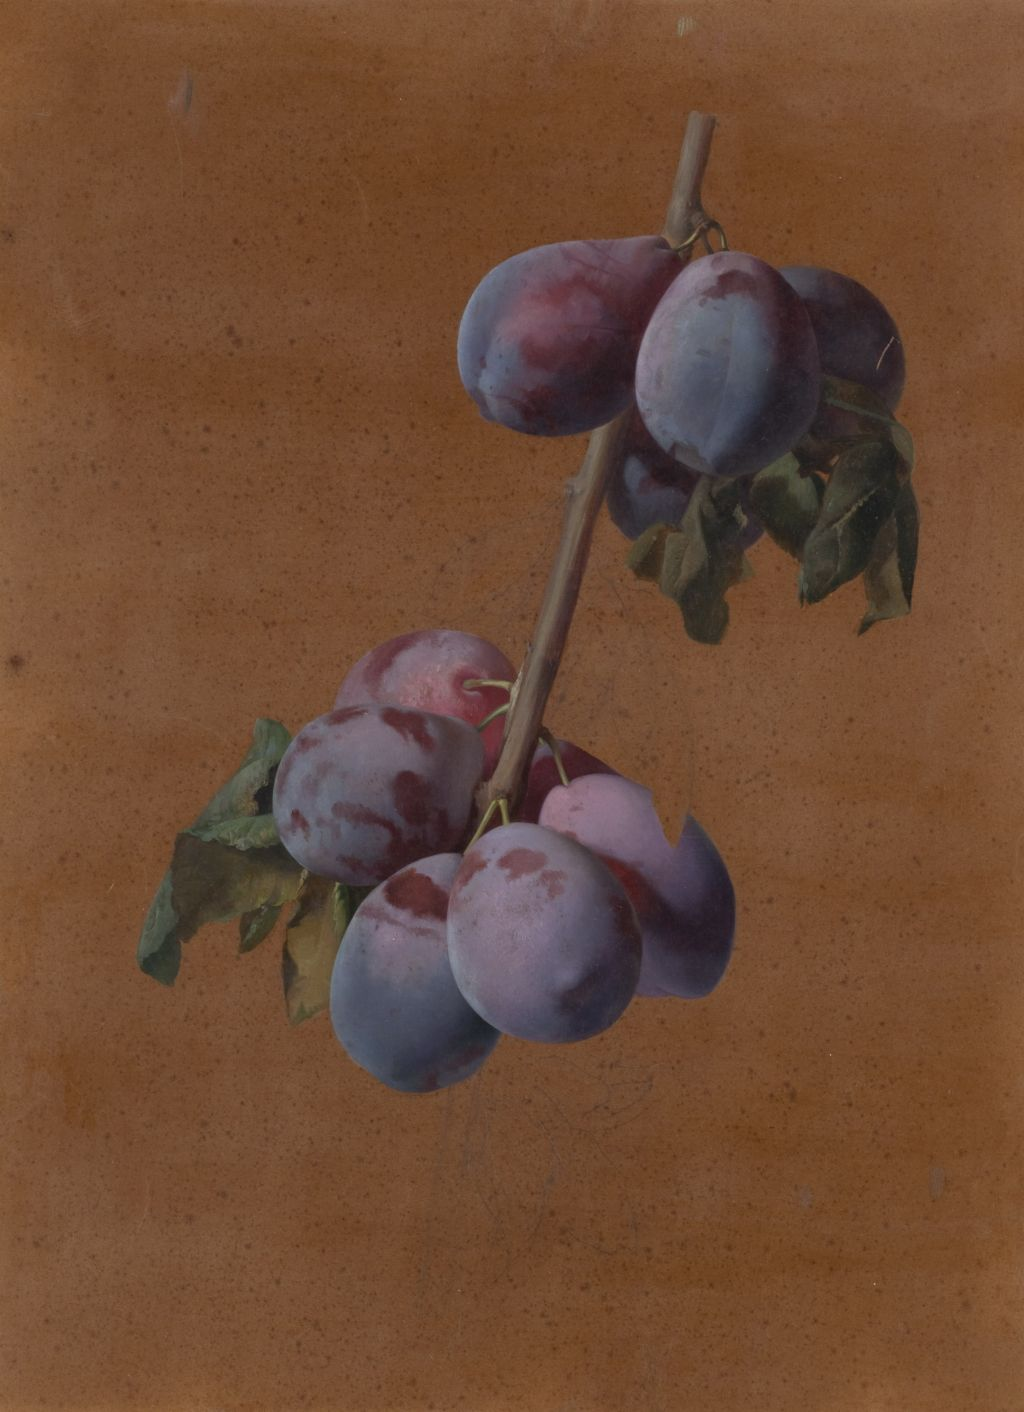 Josep Mirabent - Branch with plums